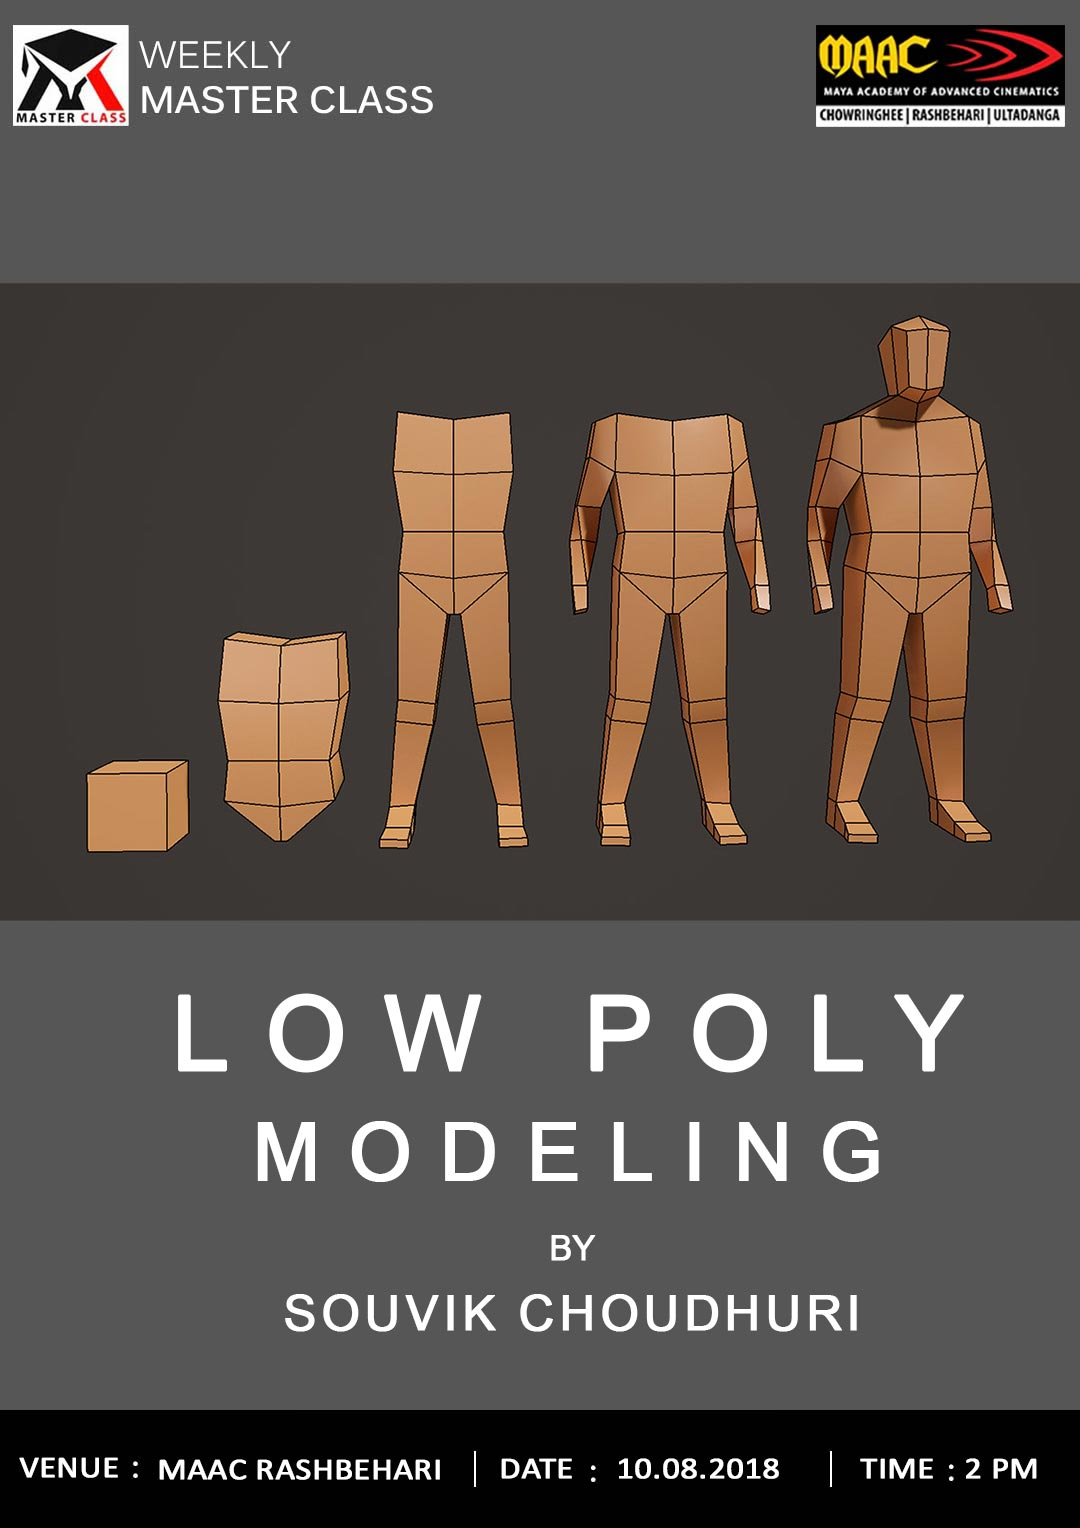 Weekly Master Class on Low Poly Modeling